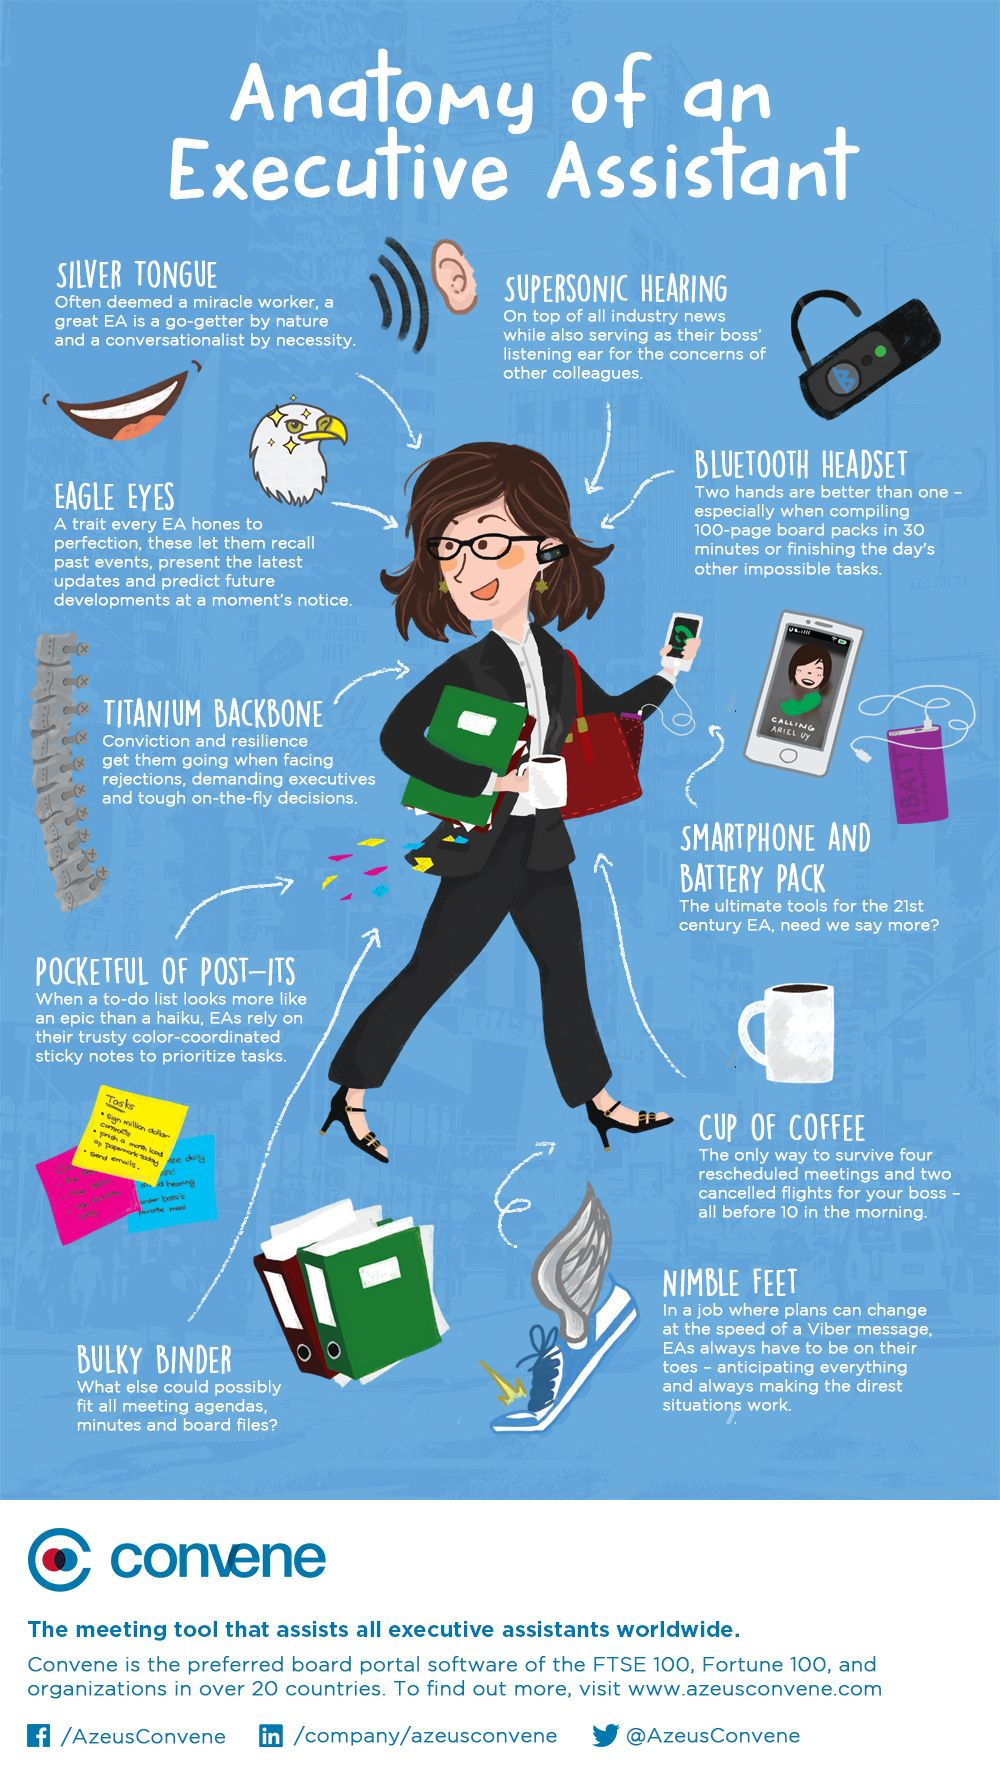 Administrative Assistant Share This With Your Favorite Assistant Anatomy Of An Executive